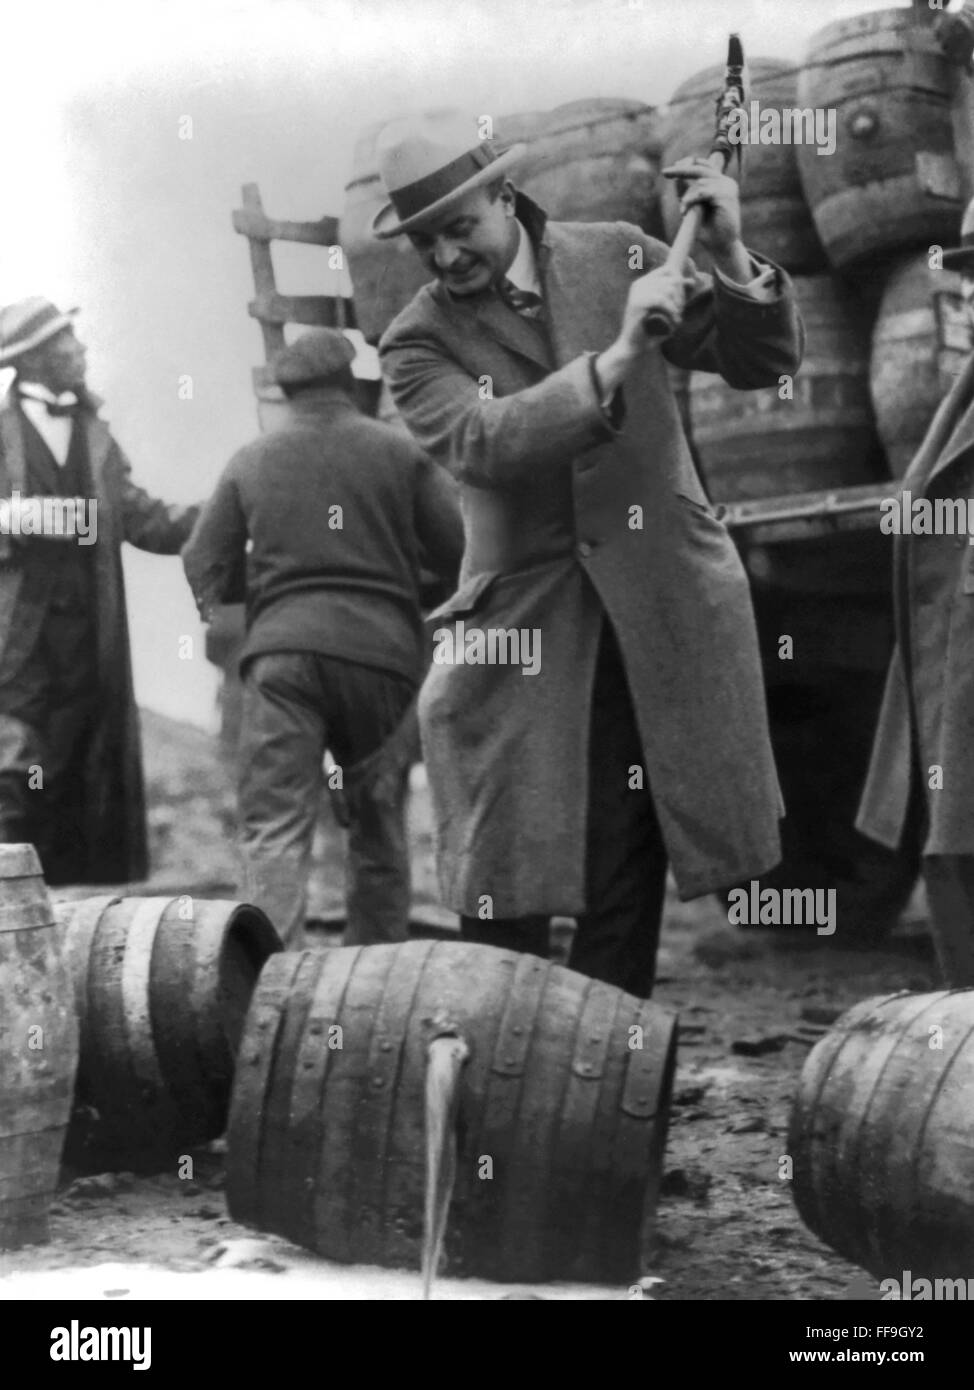 Prohibition, USA. Destroying kegs of beer, c.1924 - Stock Image